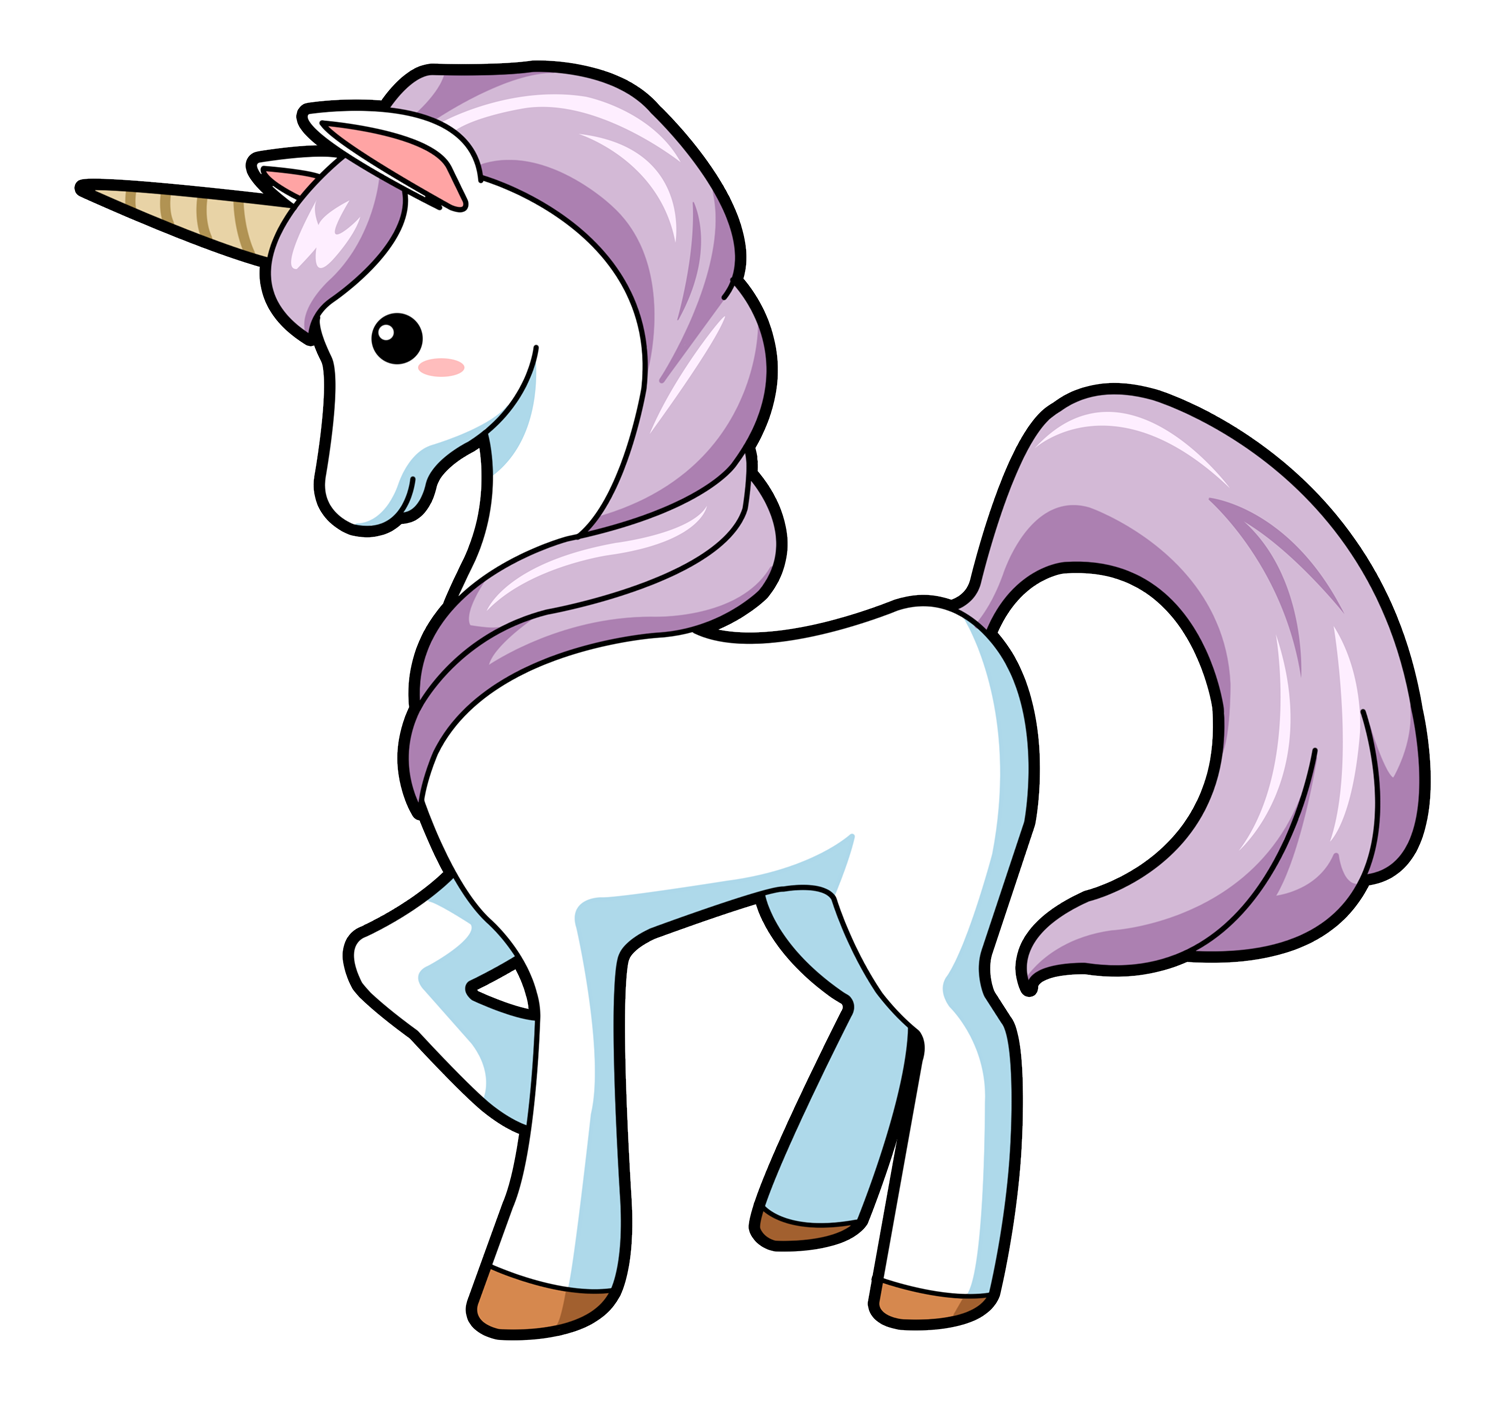 Cute unicorn png. Free to use public